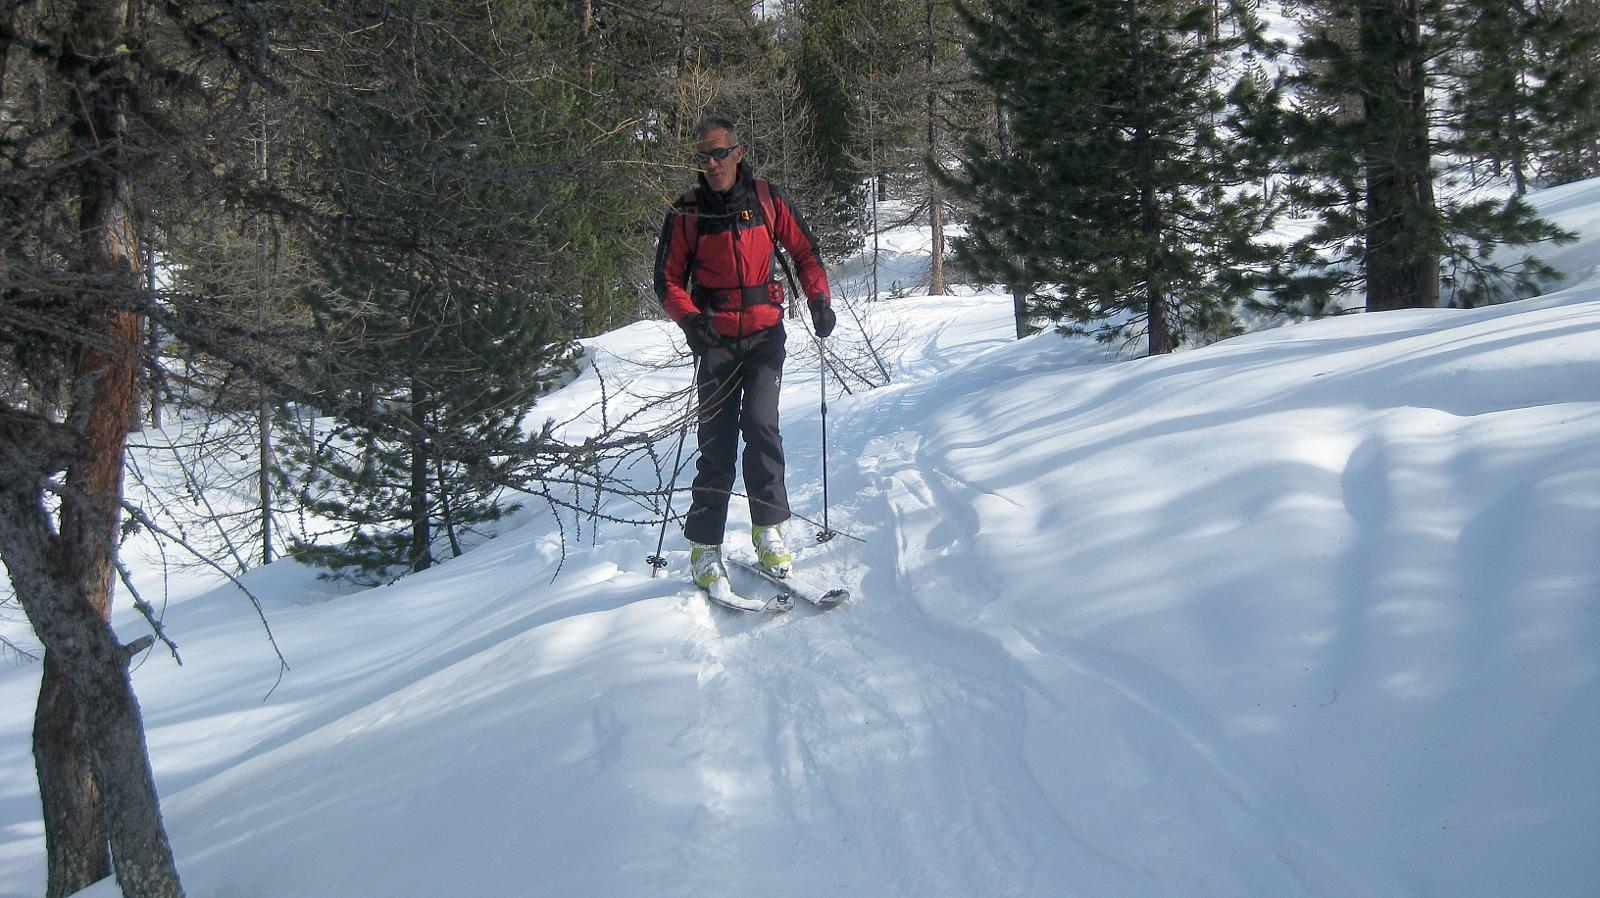 Photo of Col Gollien (2560 m)